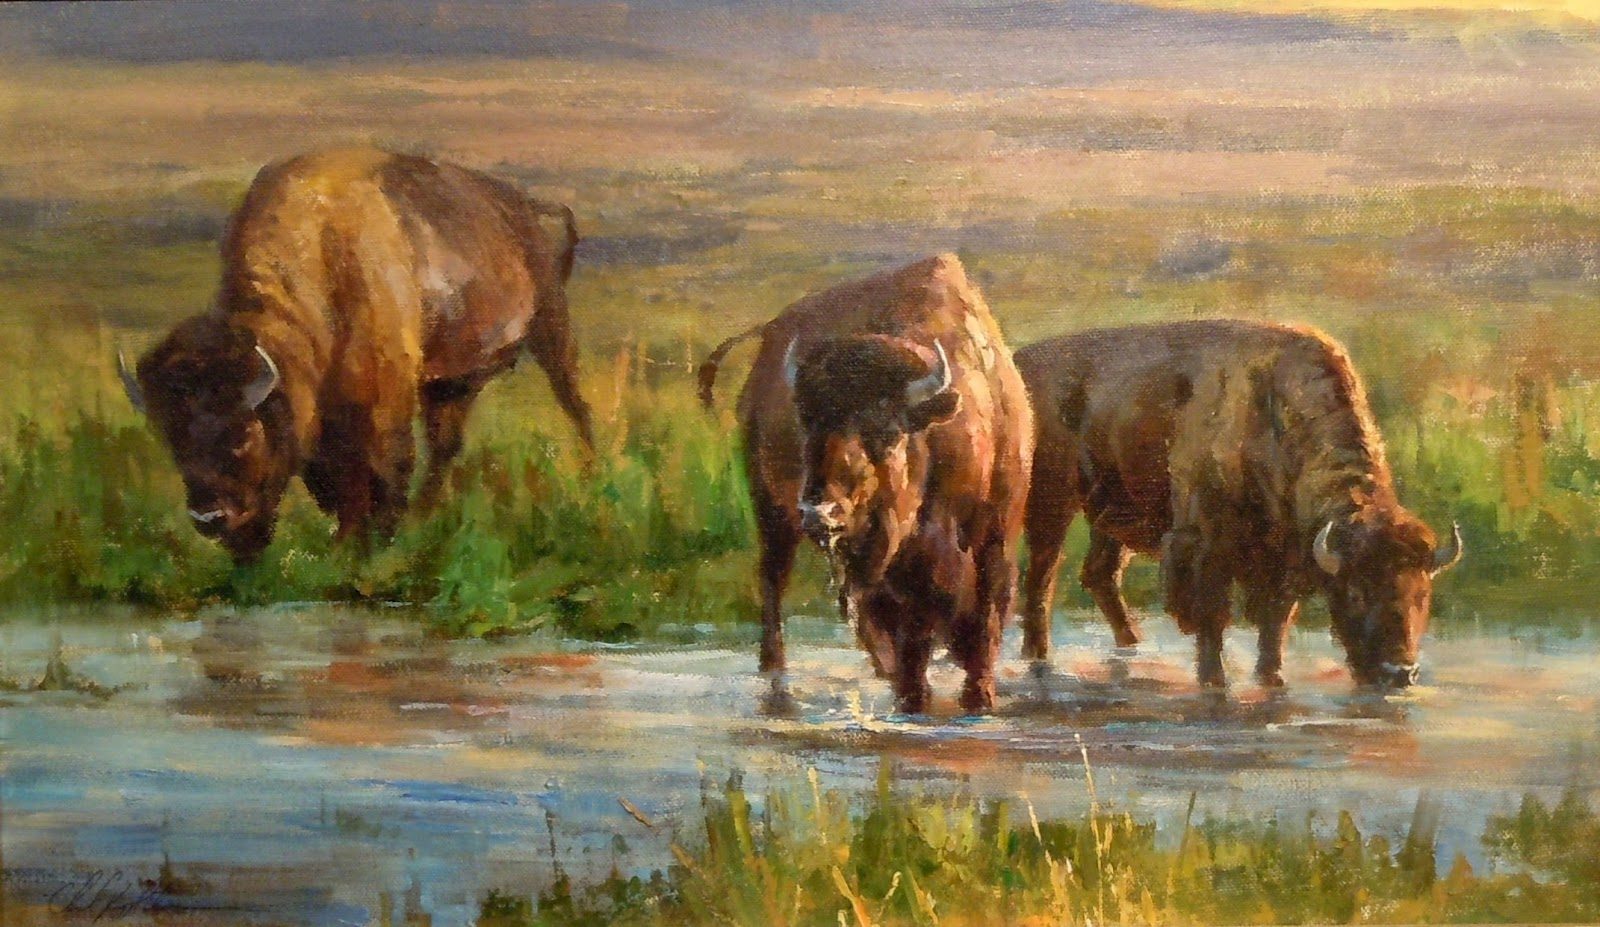 george carlson article from wildlife art journal